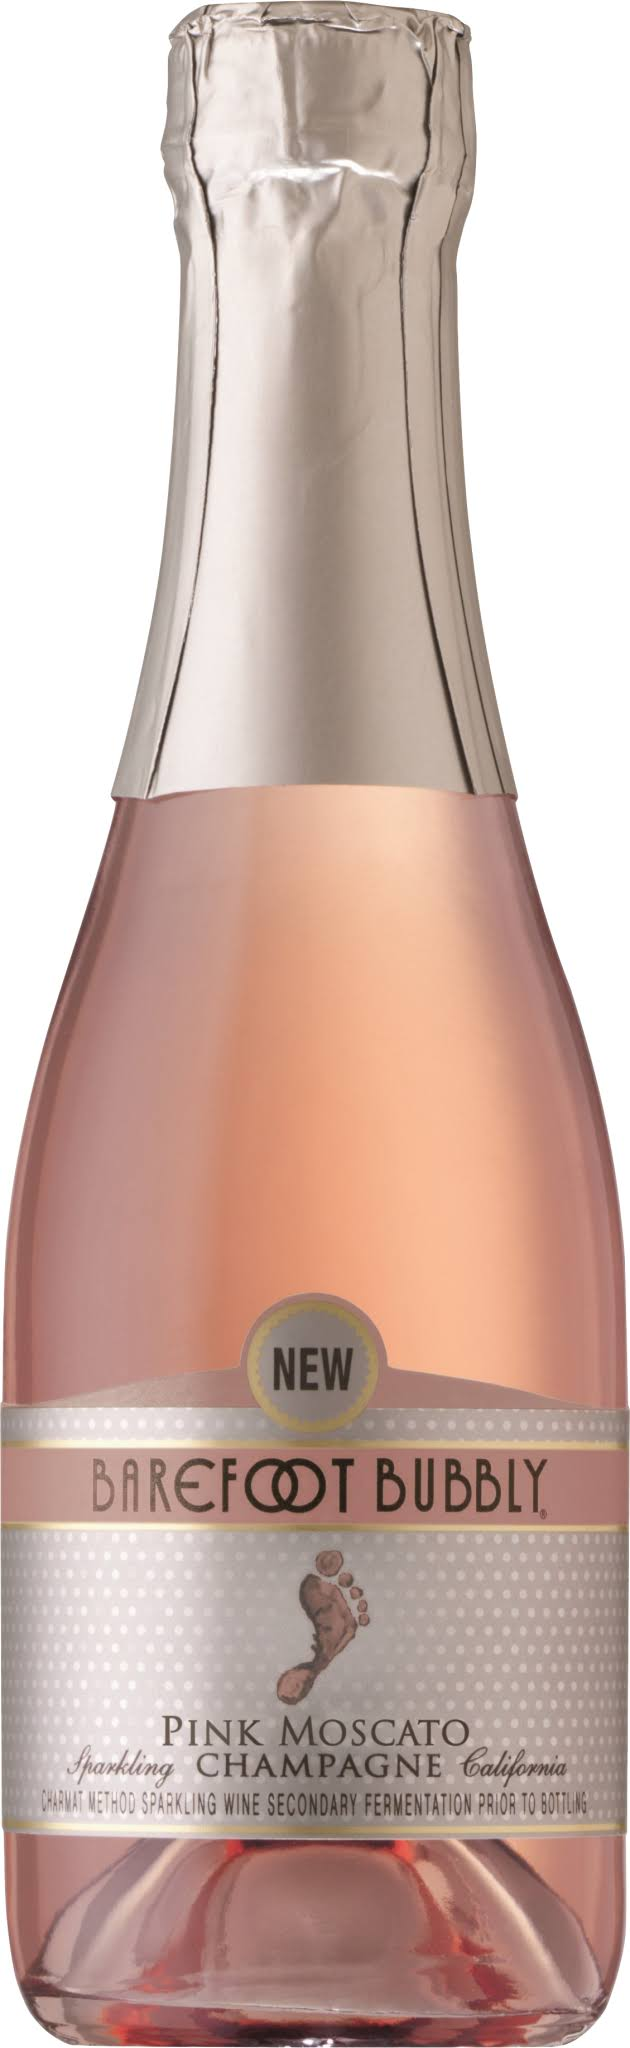 Barefoot Bubbly Pink Moscato - 187ml, 4 Pack